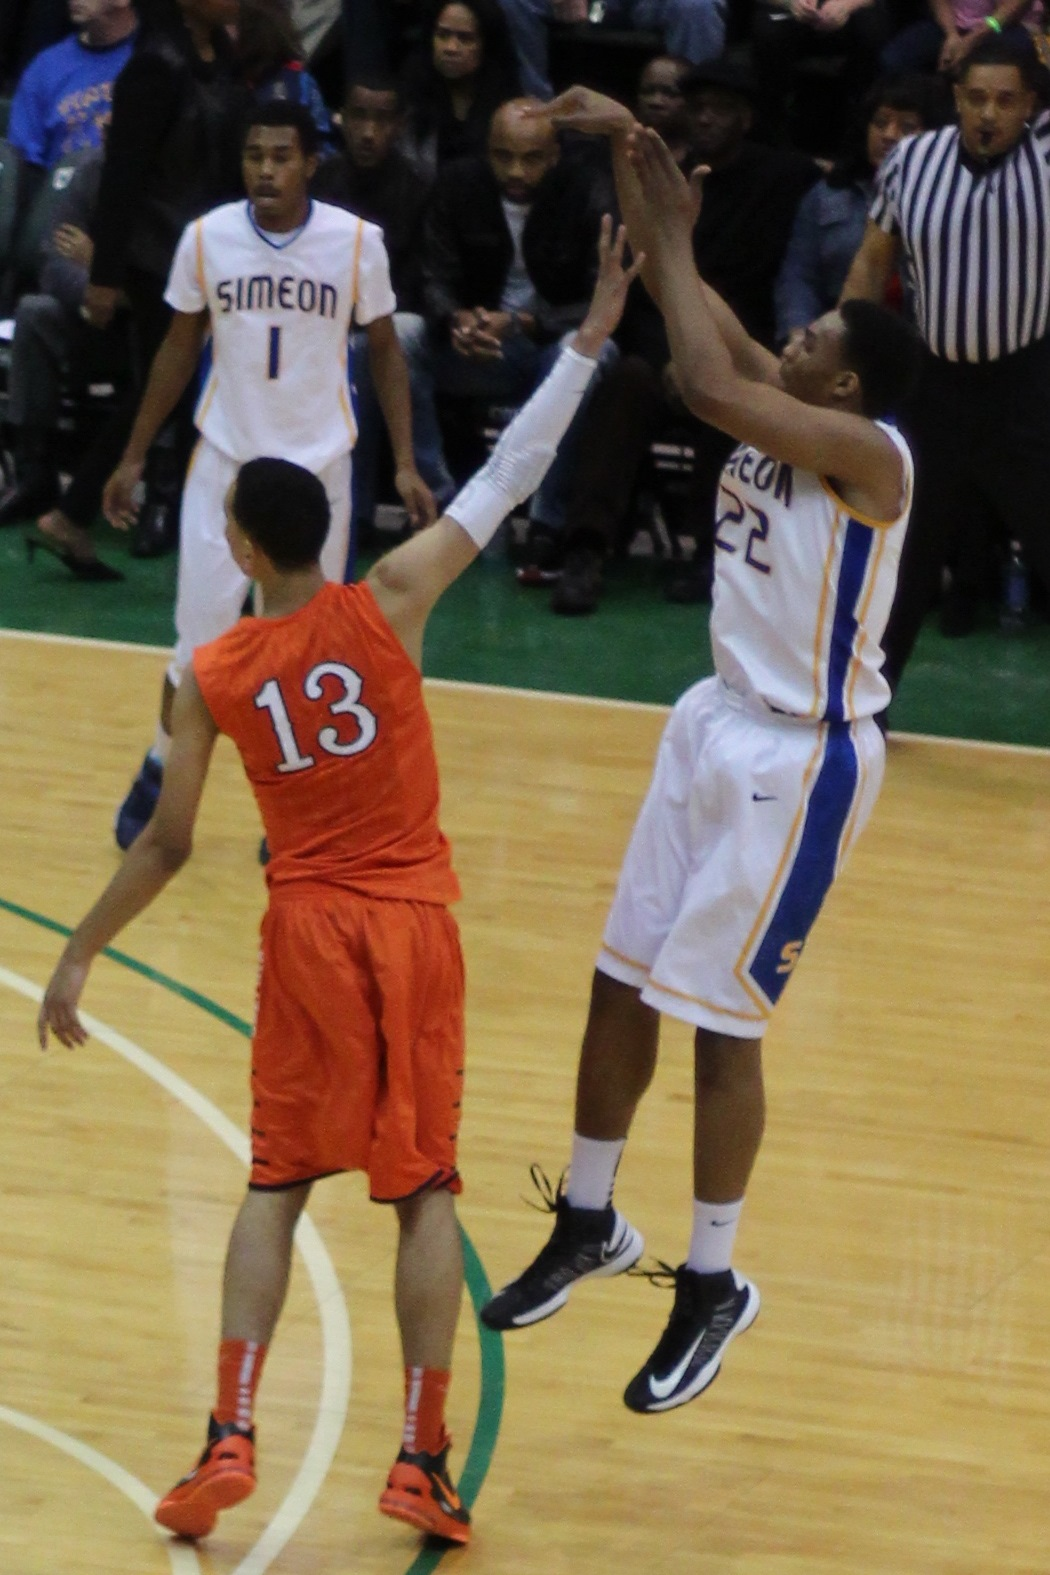 a40898c87 File 20130126 Jabari Parker shooting over Paul White at Simeon-Whitney  Young game.